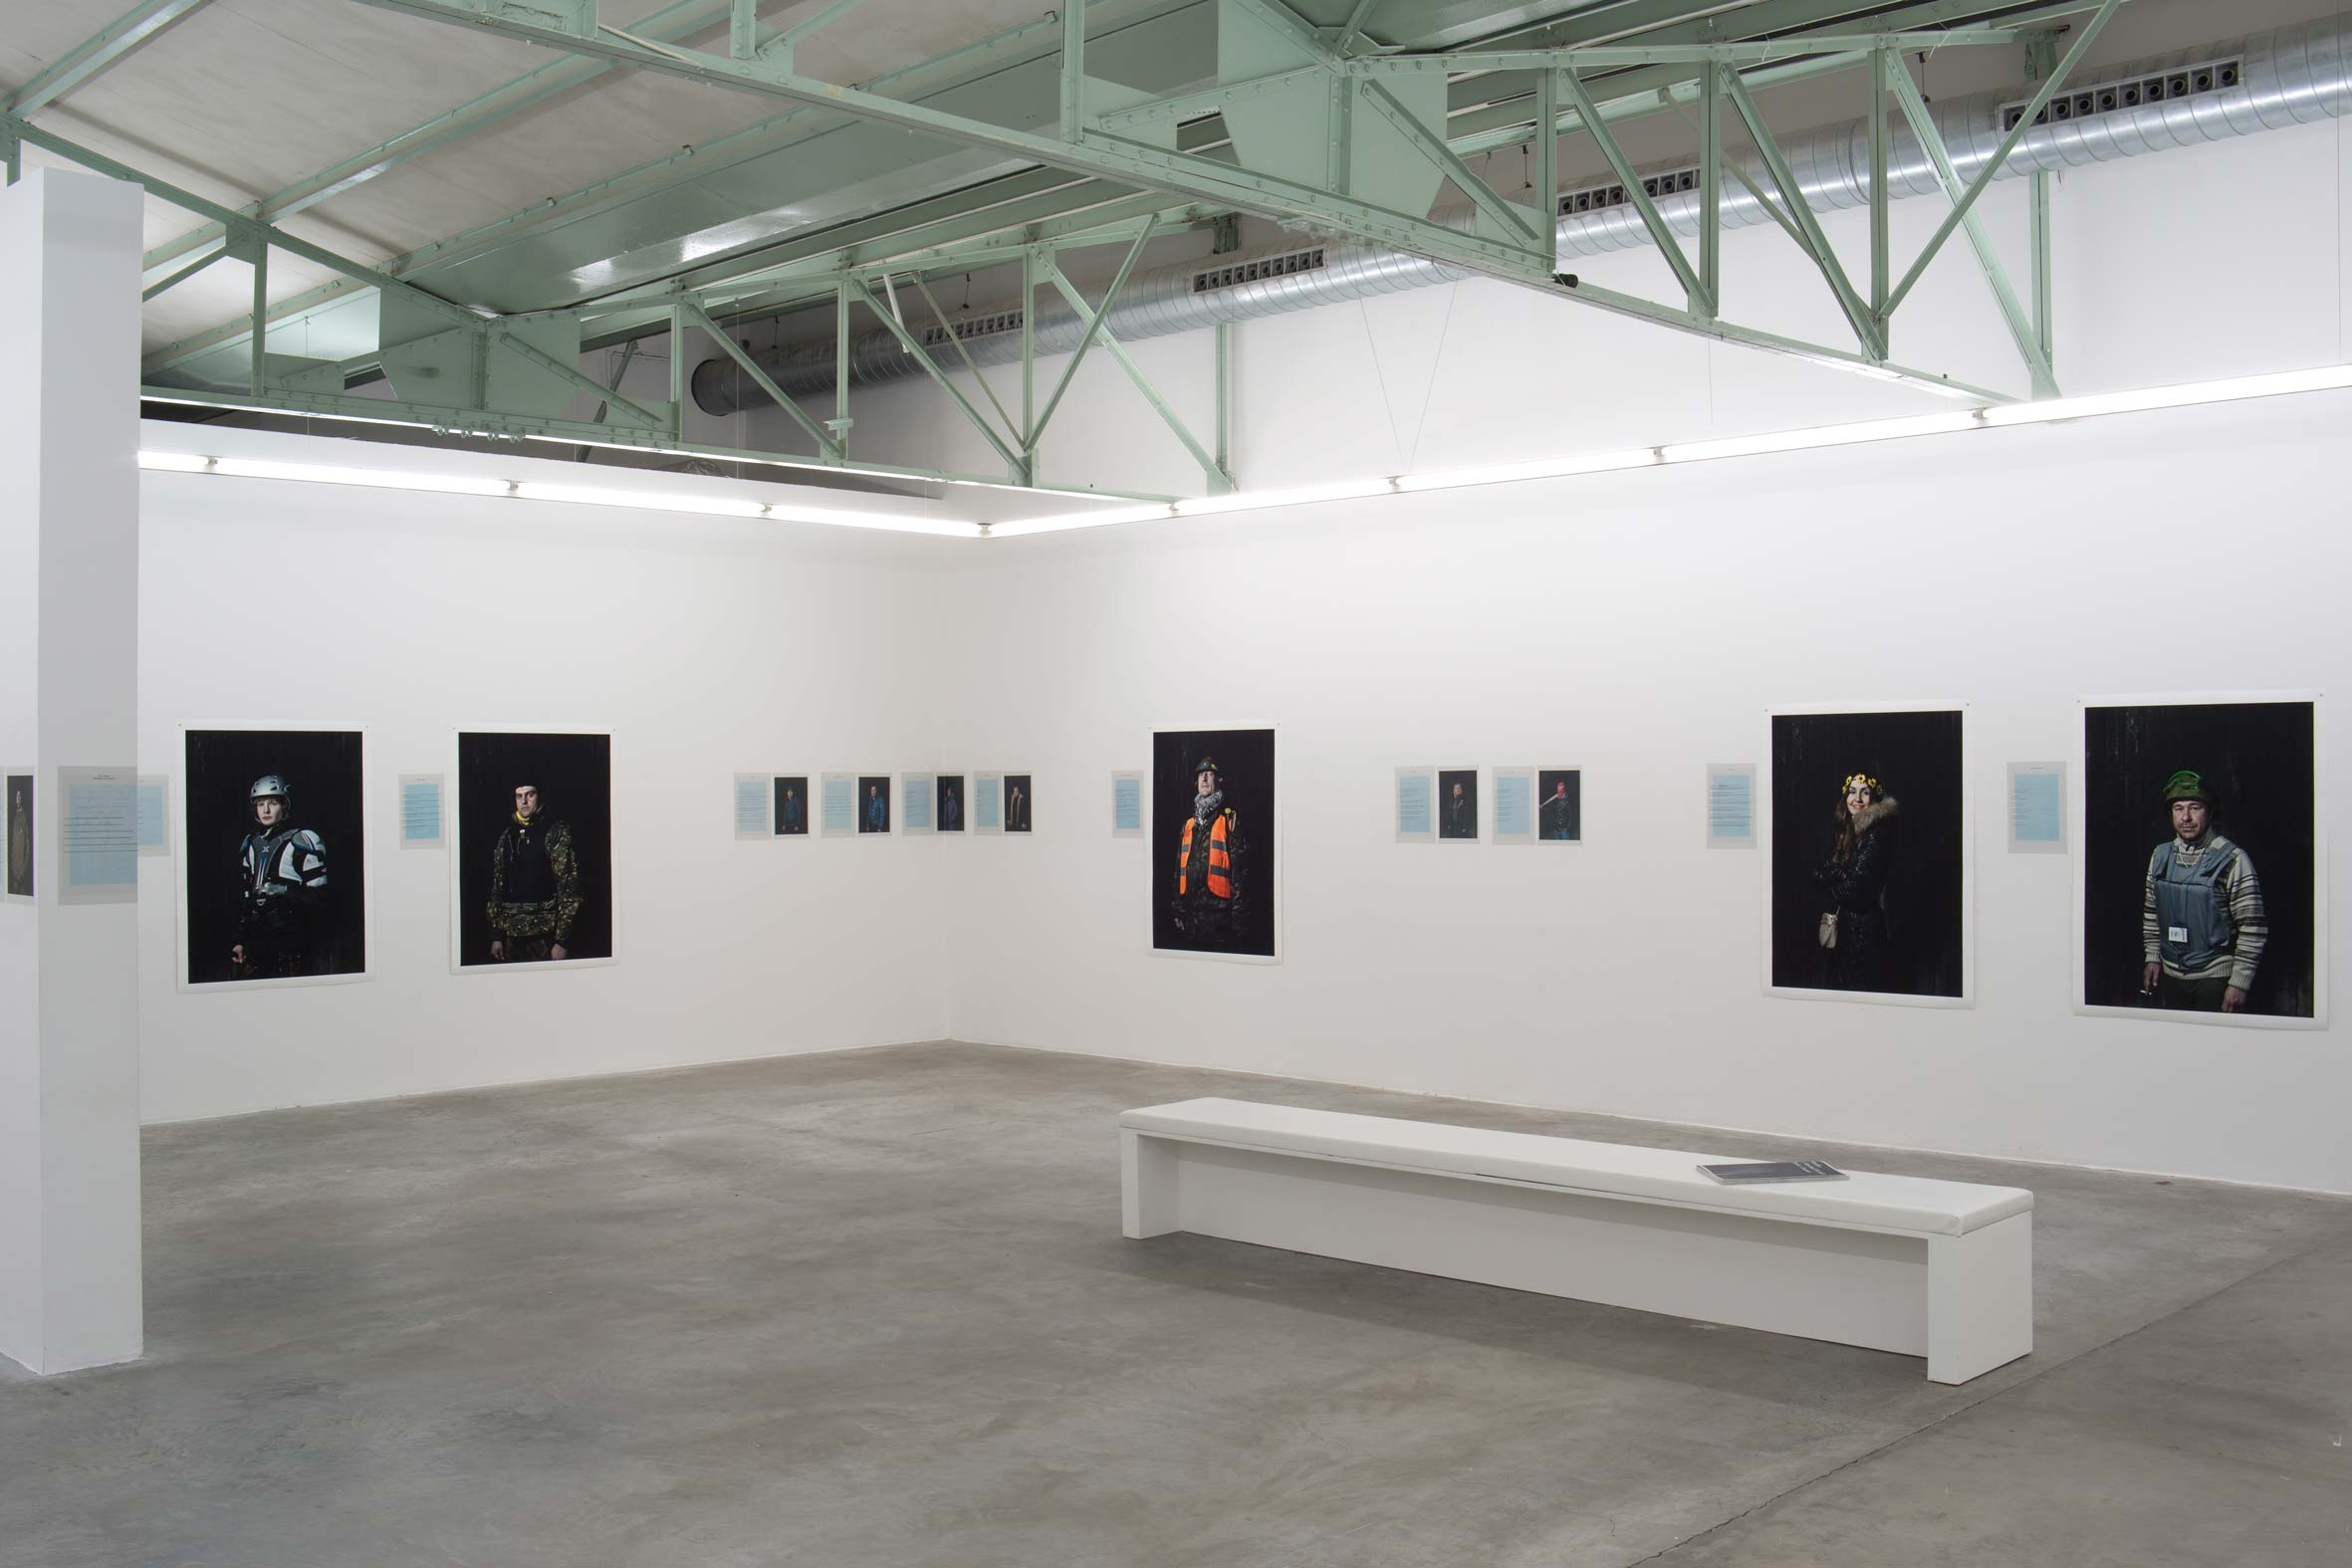 Emeric LHUISSET - Maydan Hundred portraits